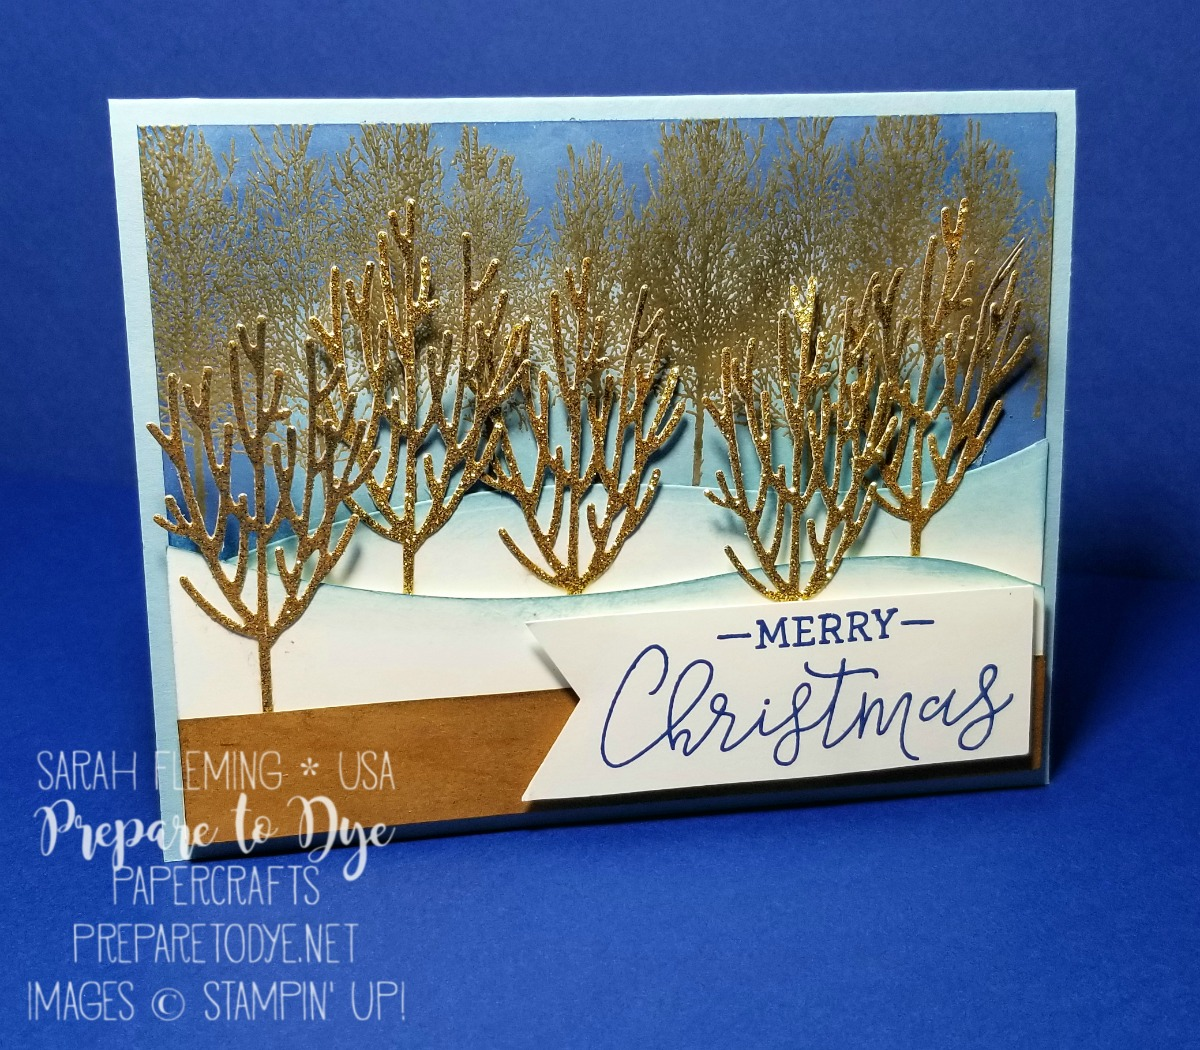 Stampin' Up! handmade Christmas winter card featuring Winter Woods bundle with In the Woods framelits, heat embossing, Warm Hearted host stamp set, sponged sky - Sarah Fleming - Prepare to Dye Papercrafts